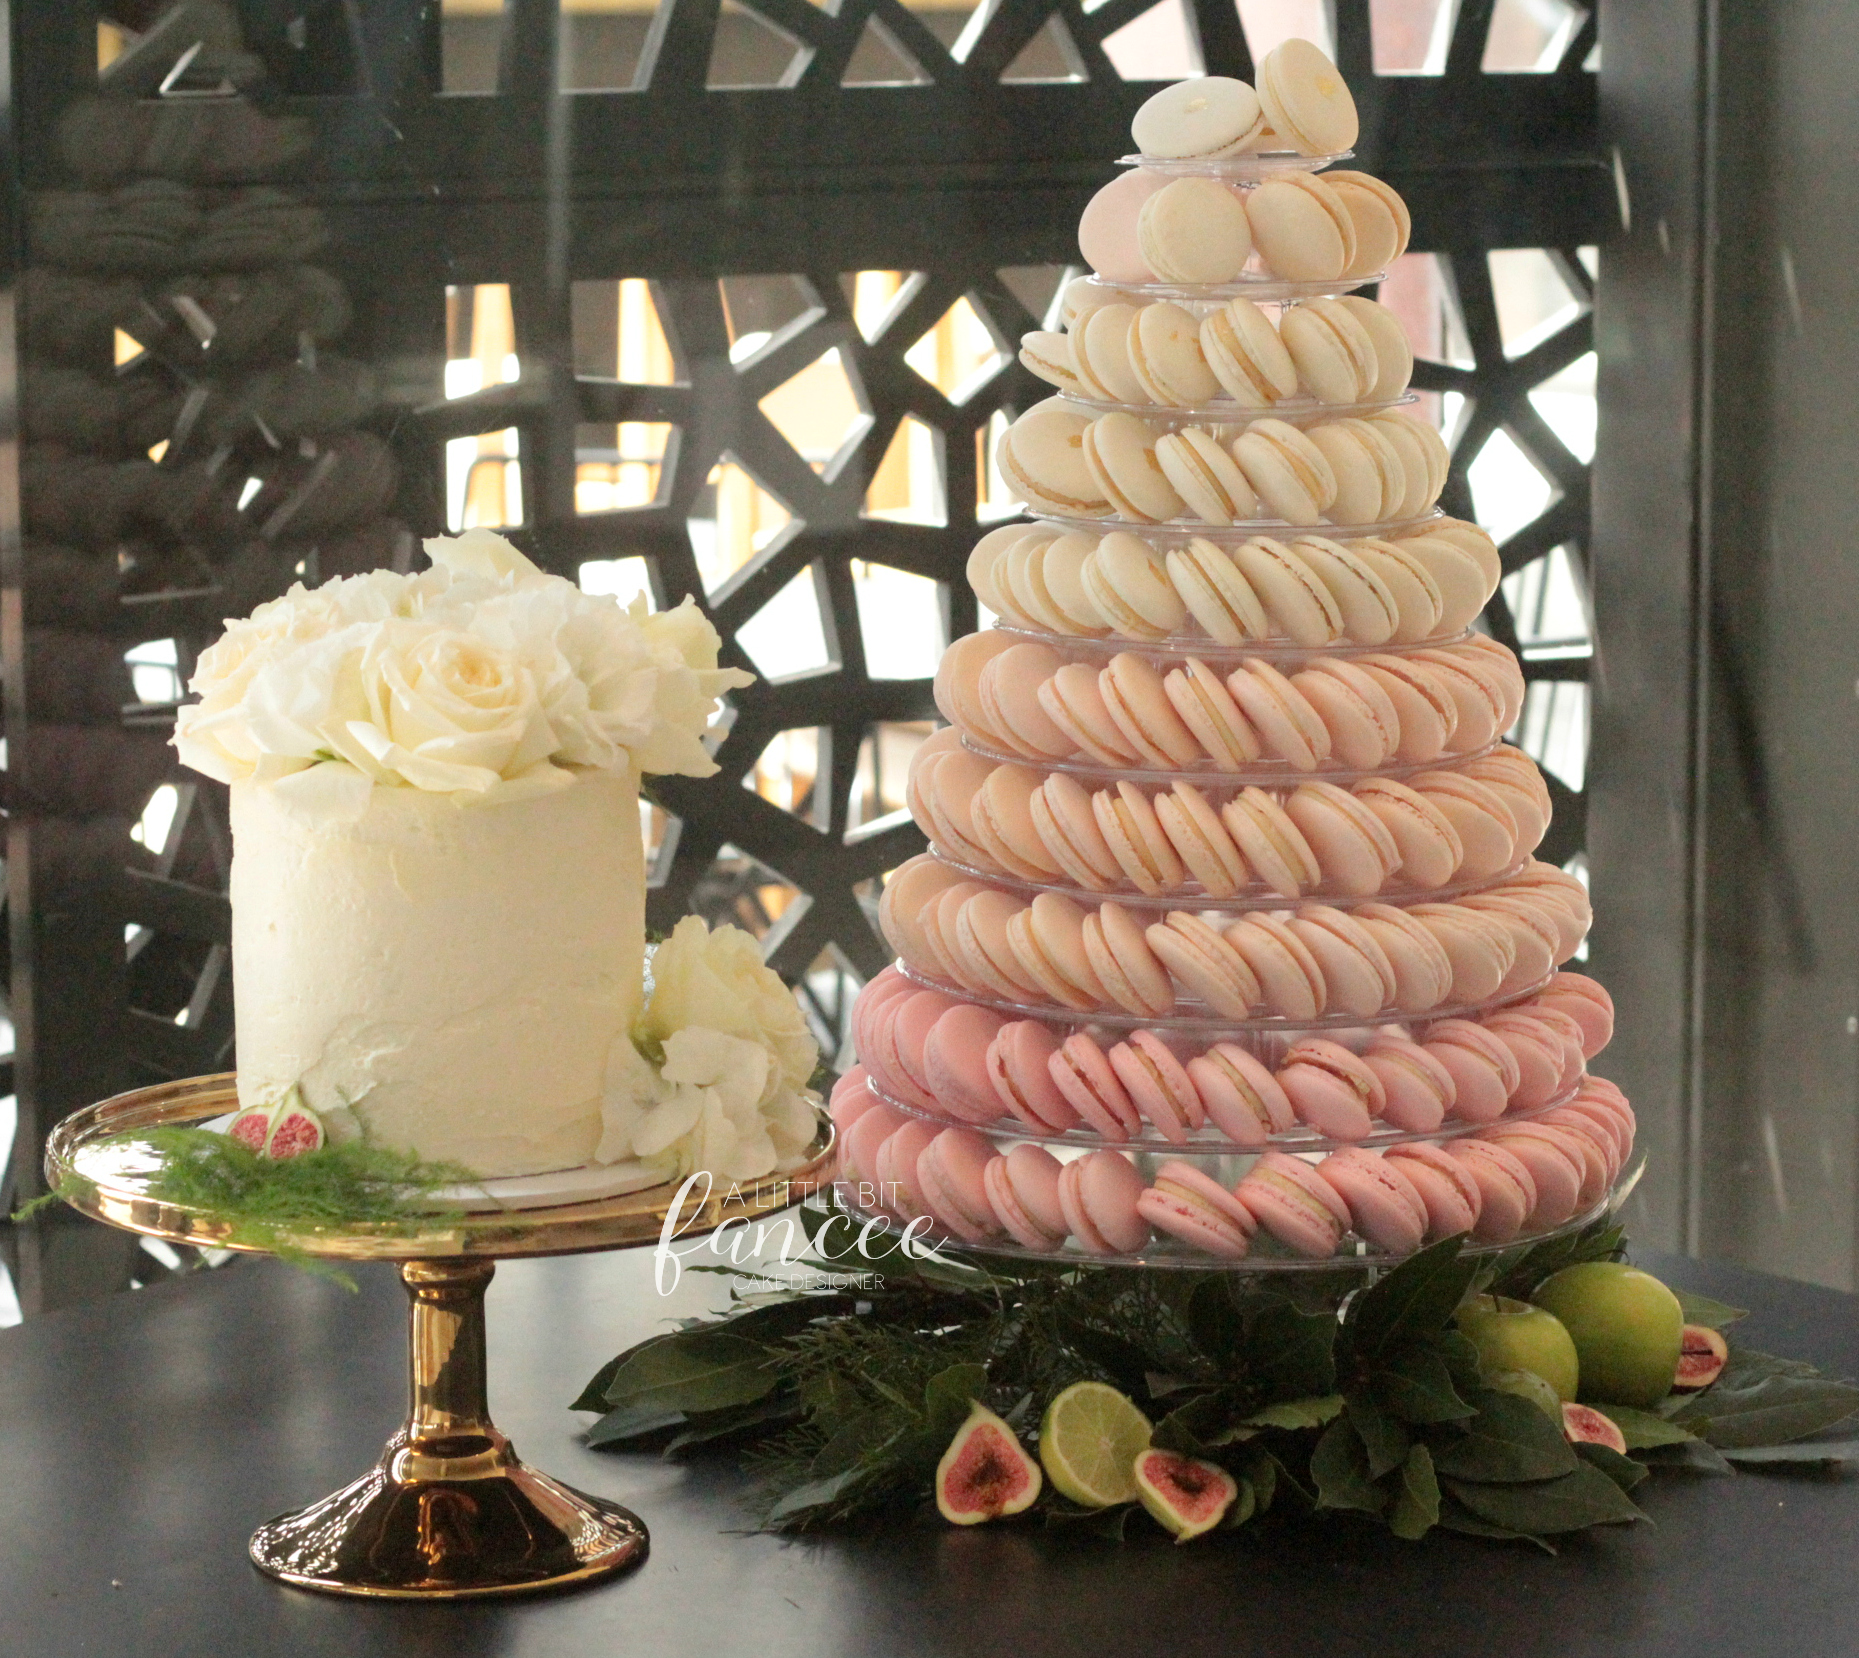 Cutting cake and macarons